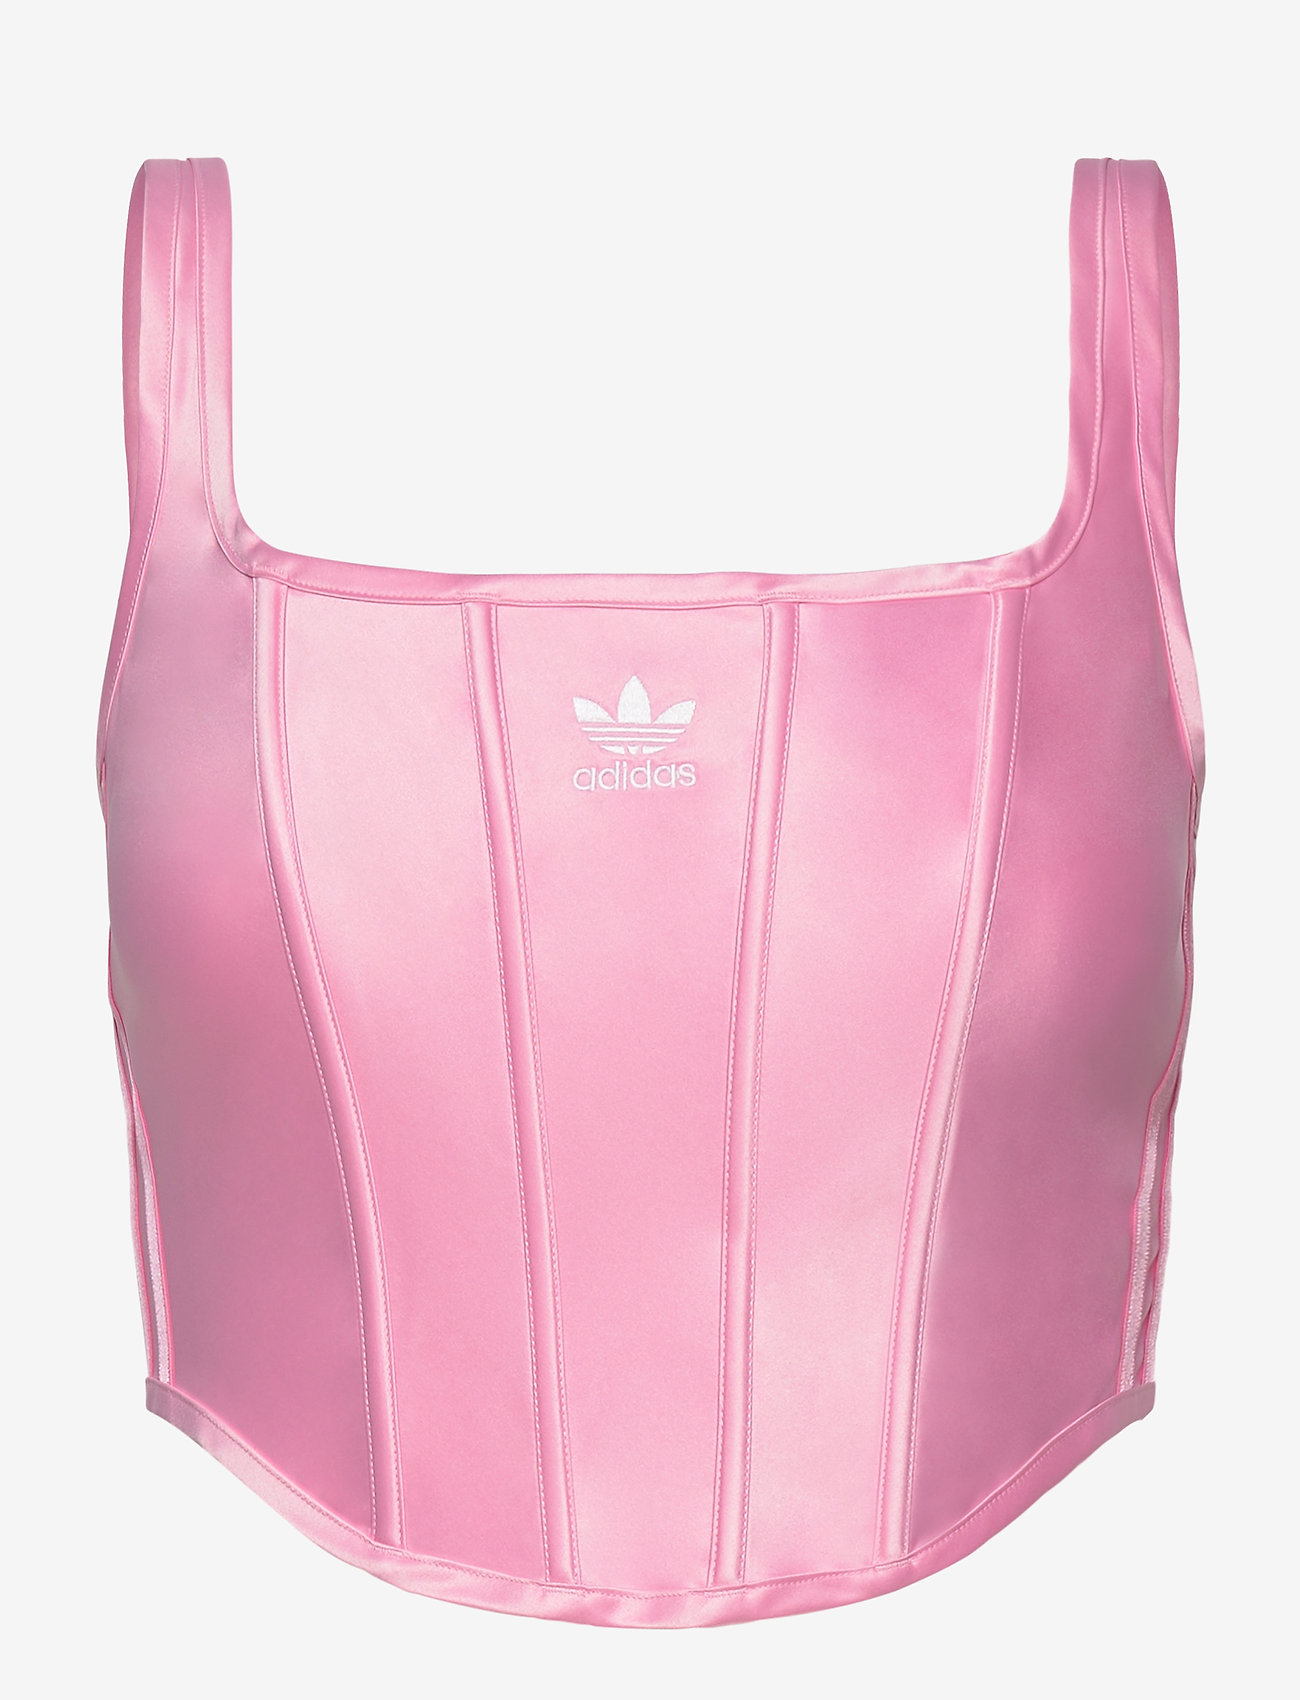 adidas Originals - Corset W - crop tops - ltpink - 1